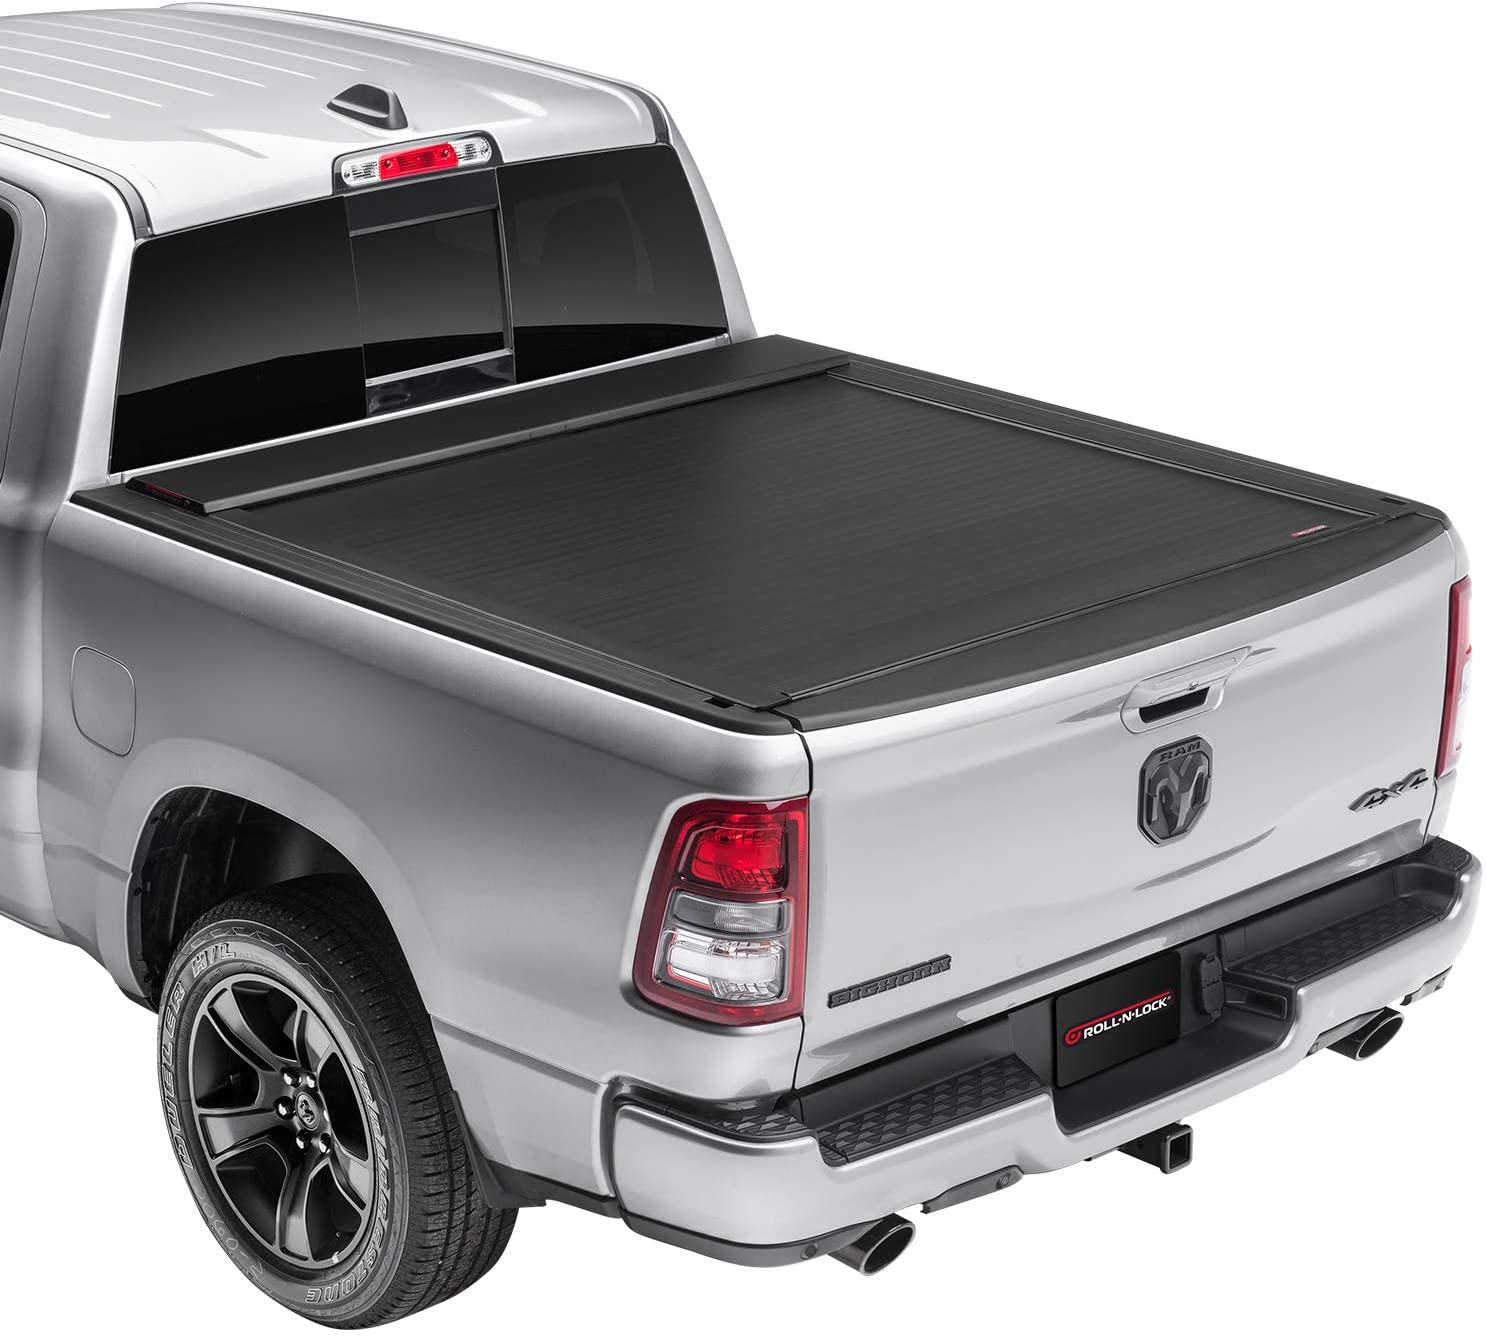 Roll N Lock E-Series Retractable Truck Bed Tonneau Cover | RC401E | Fits 2019 - 2020 New Body Style Dodge Ram 1500-3500, Does Not Fit With Multi-Function (Split) Tailgate 5' 7